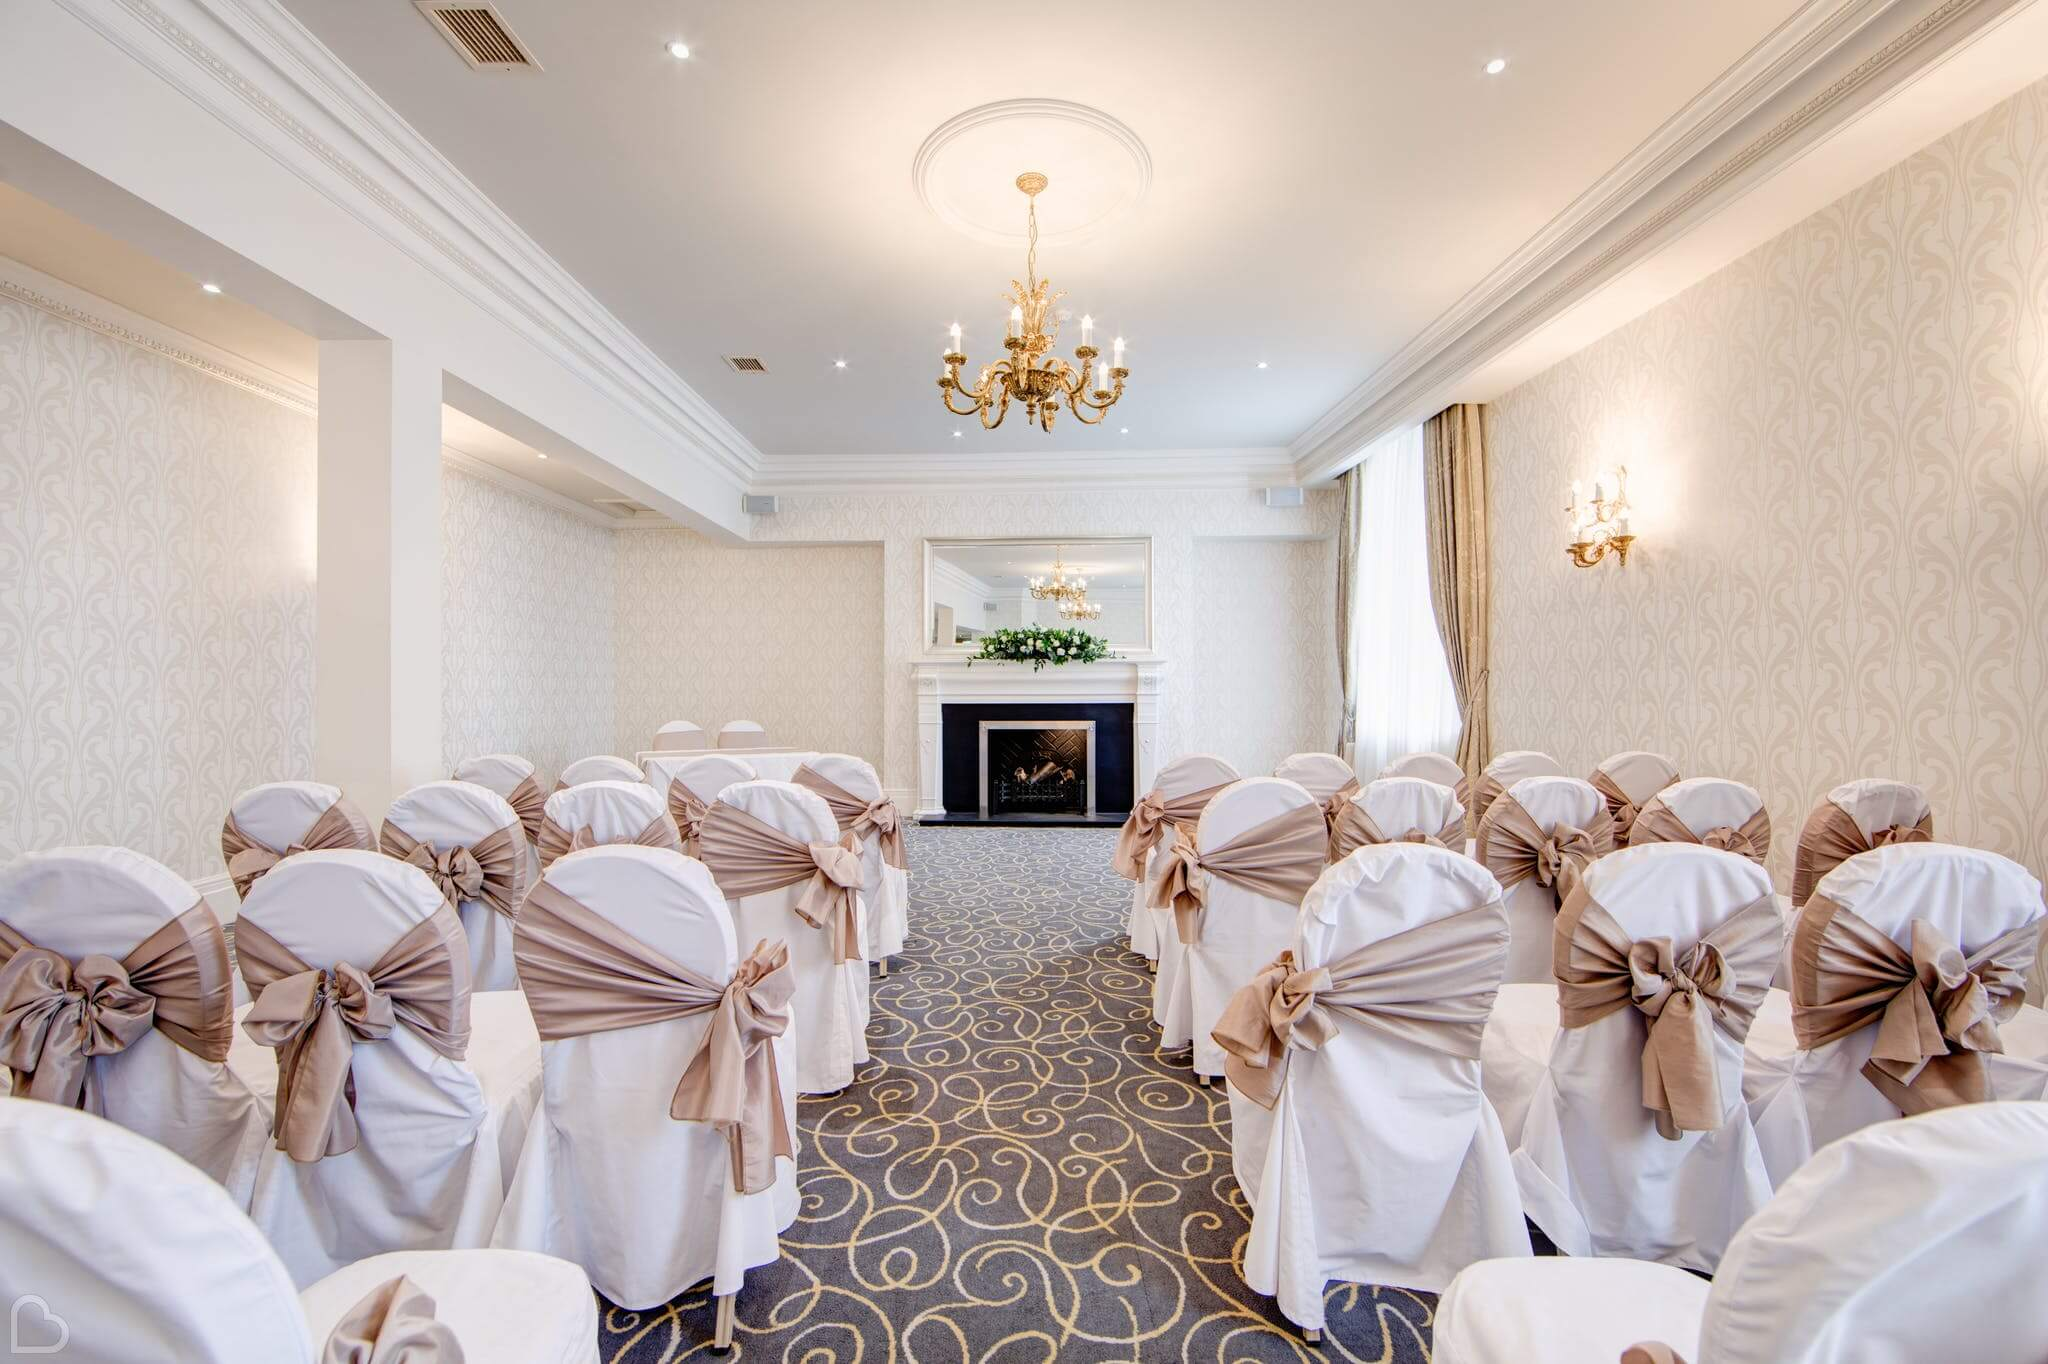 the grand hotel wedding venue ready for a wedding ceremony